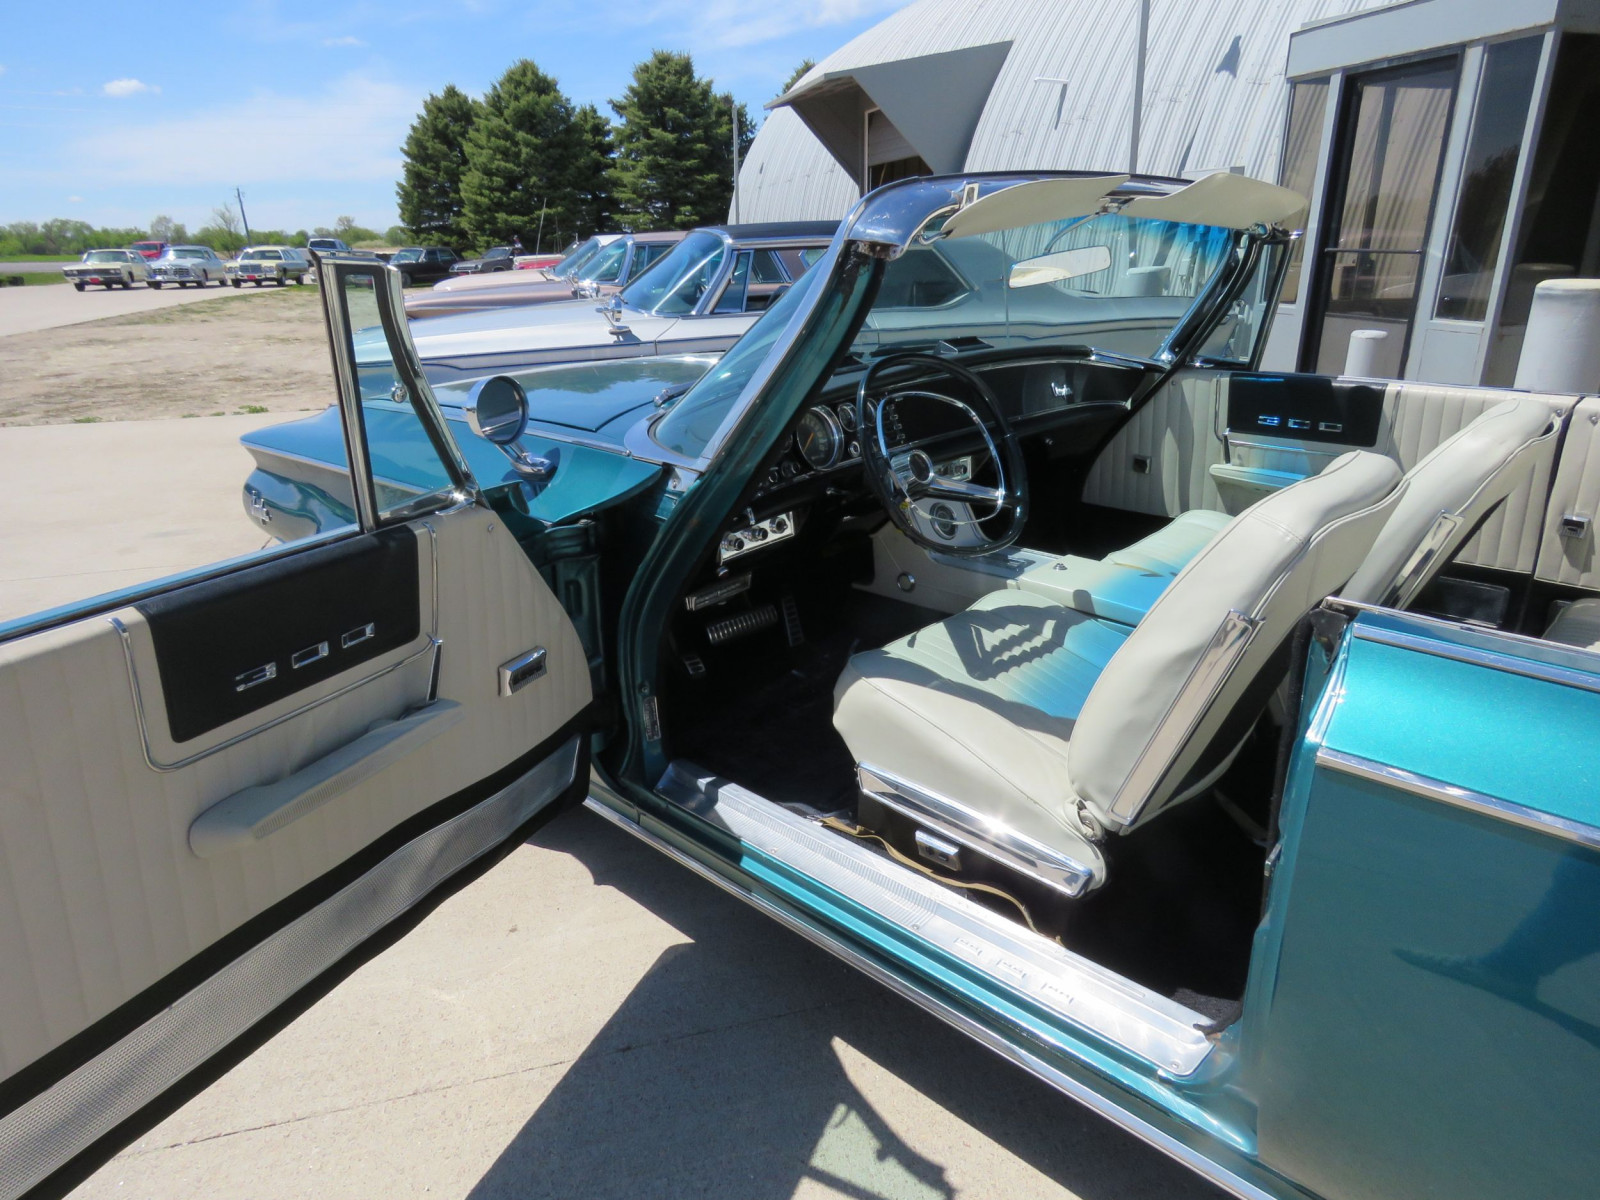 RARE 1963 Chrysler 300 Pace Setter Convertible Indy 500 Pace car - Image 20